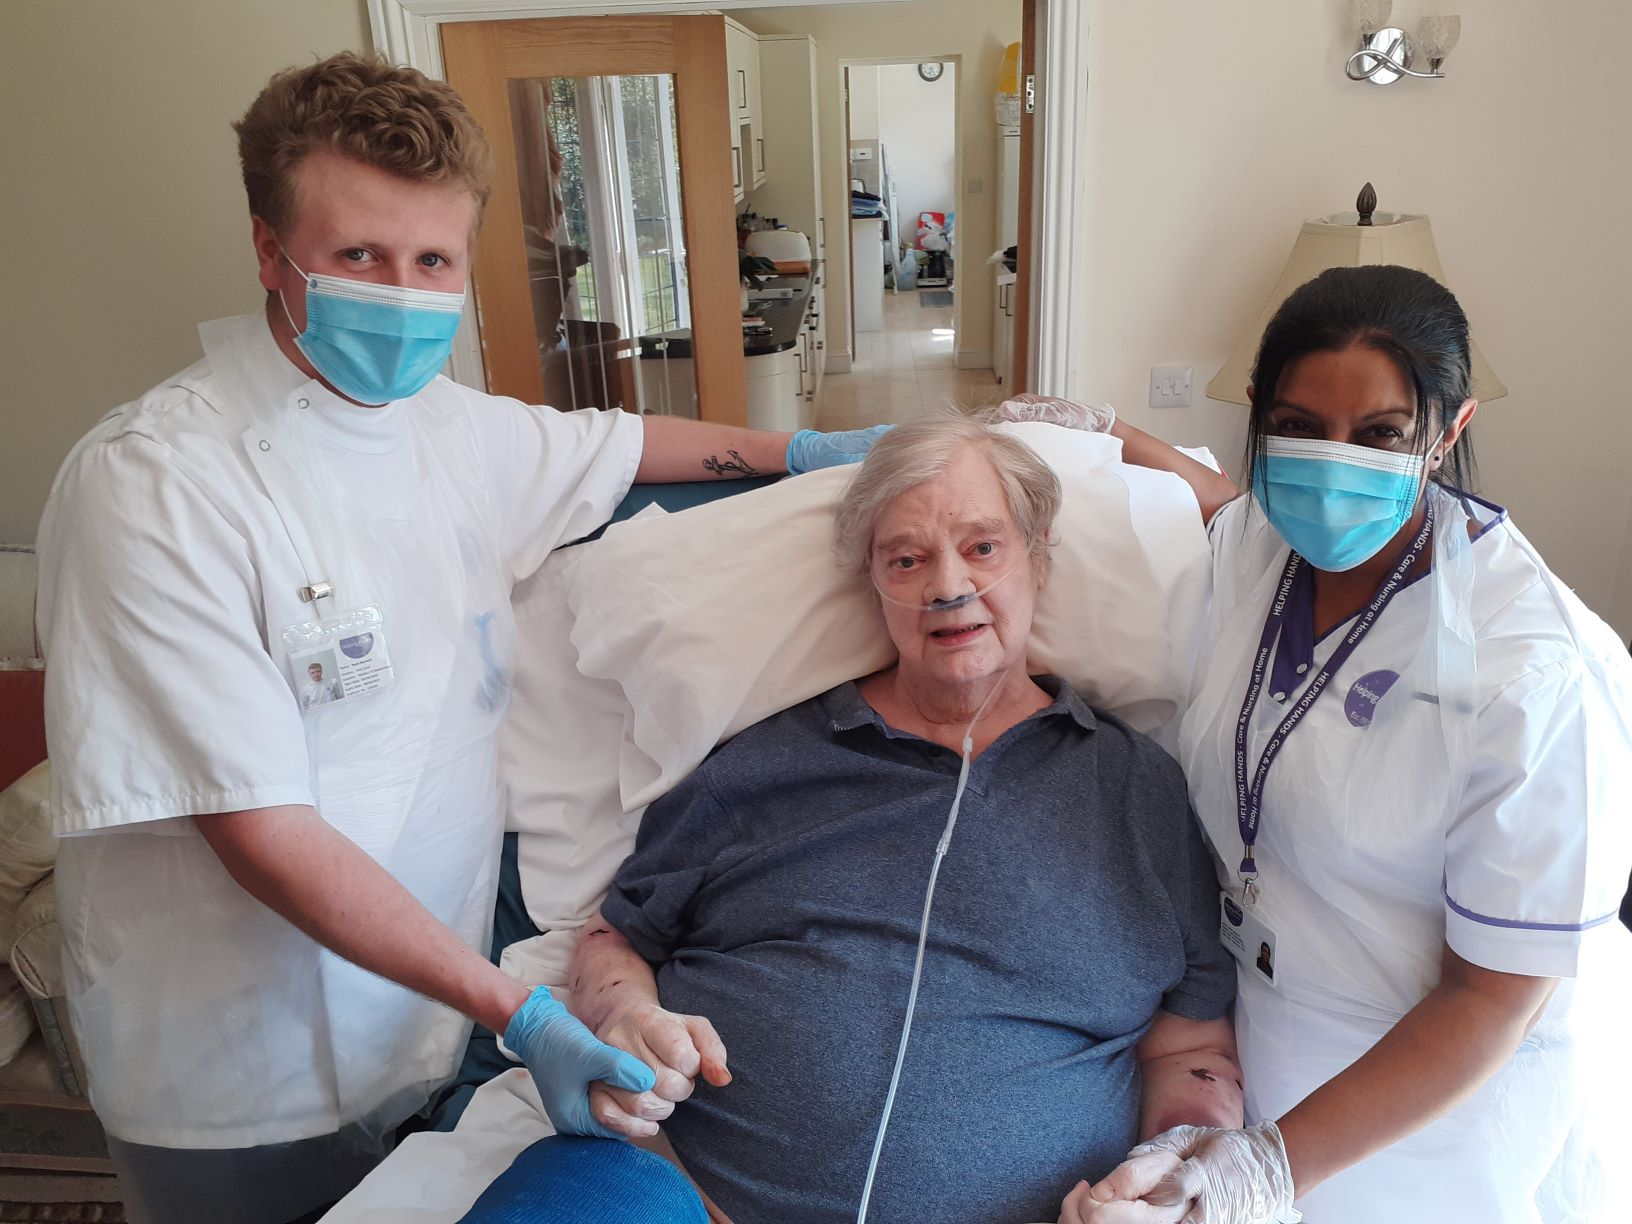 Helping Hands customer and 60s pop star featuring in new UB40 NHS charity single